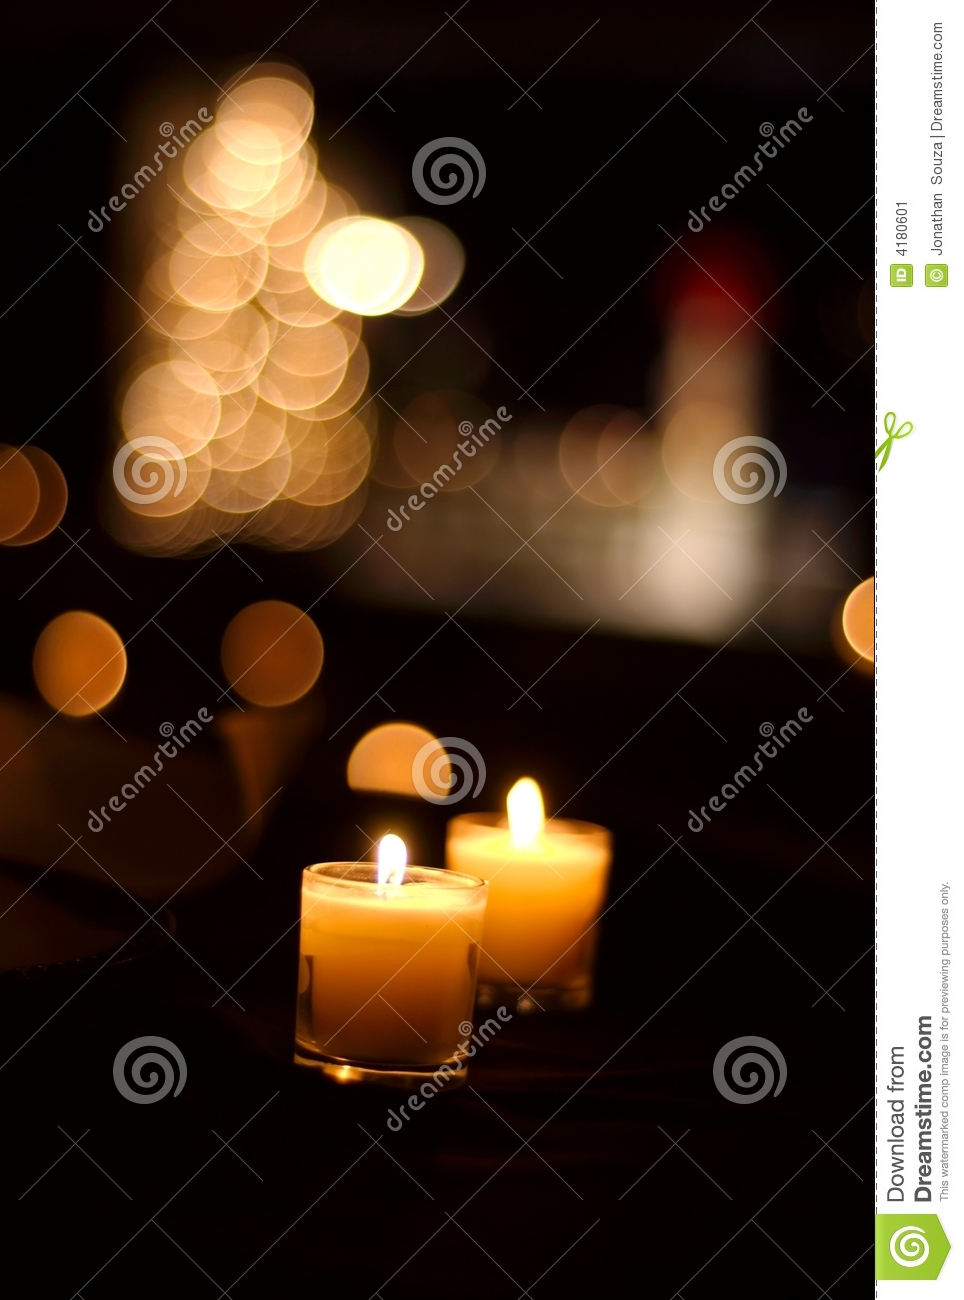 Candle light serenity